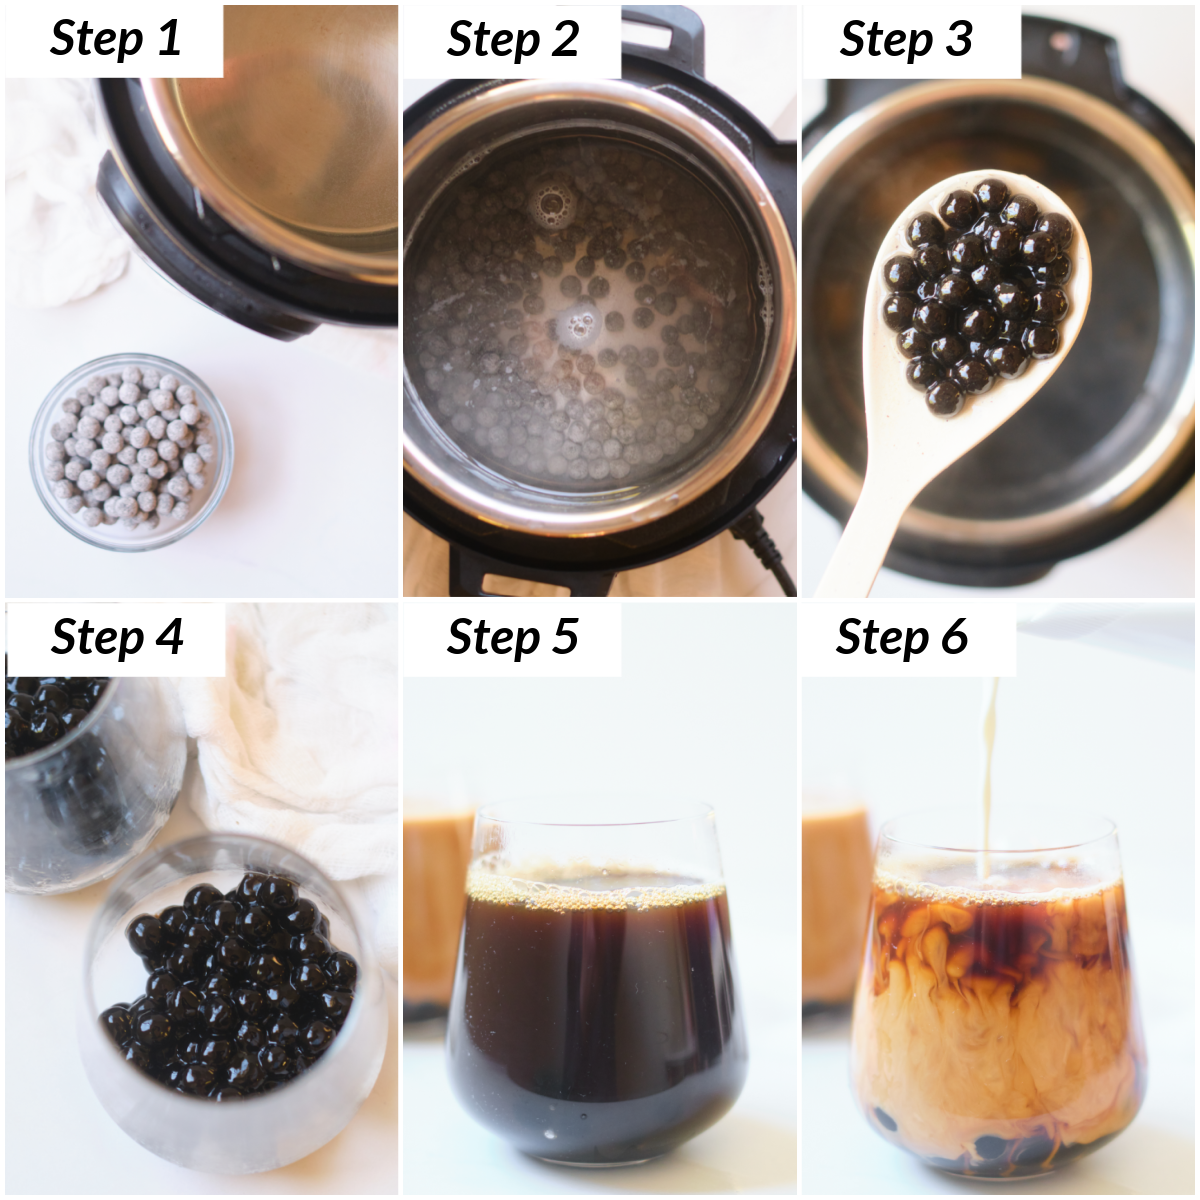 image collage showing the steps for making instant pot iced boba coffee